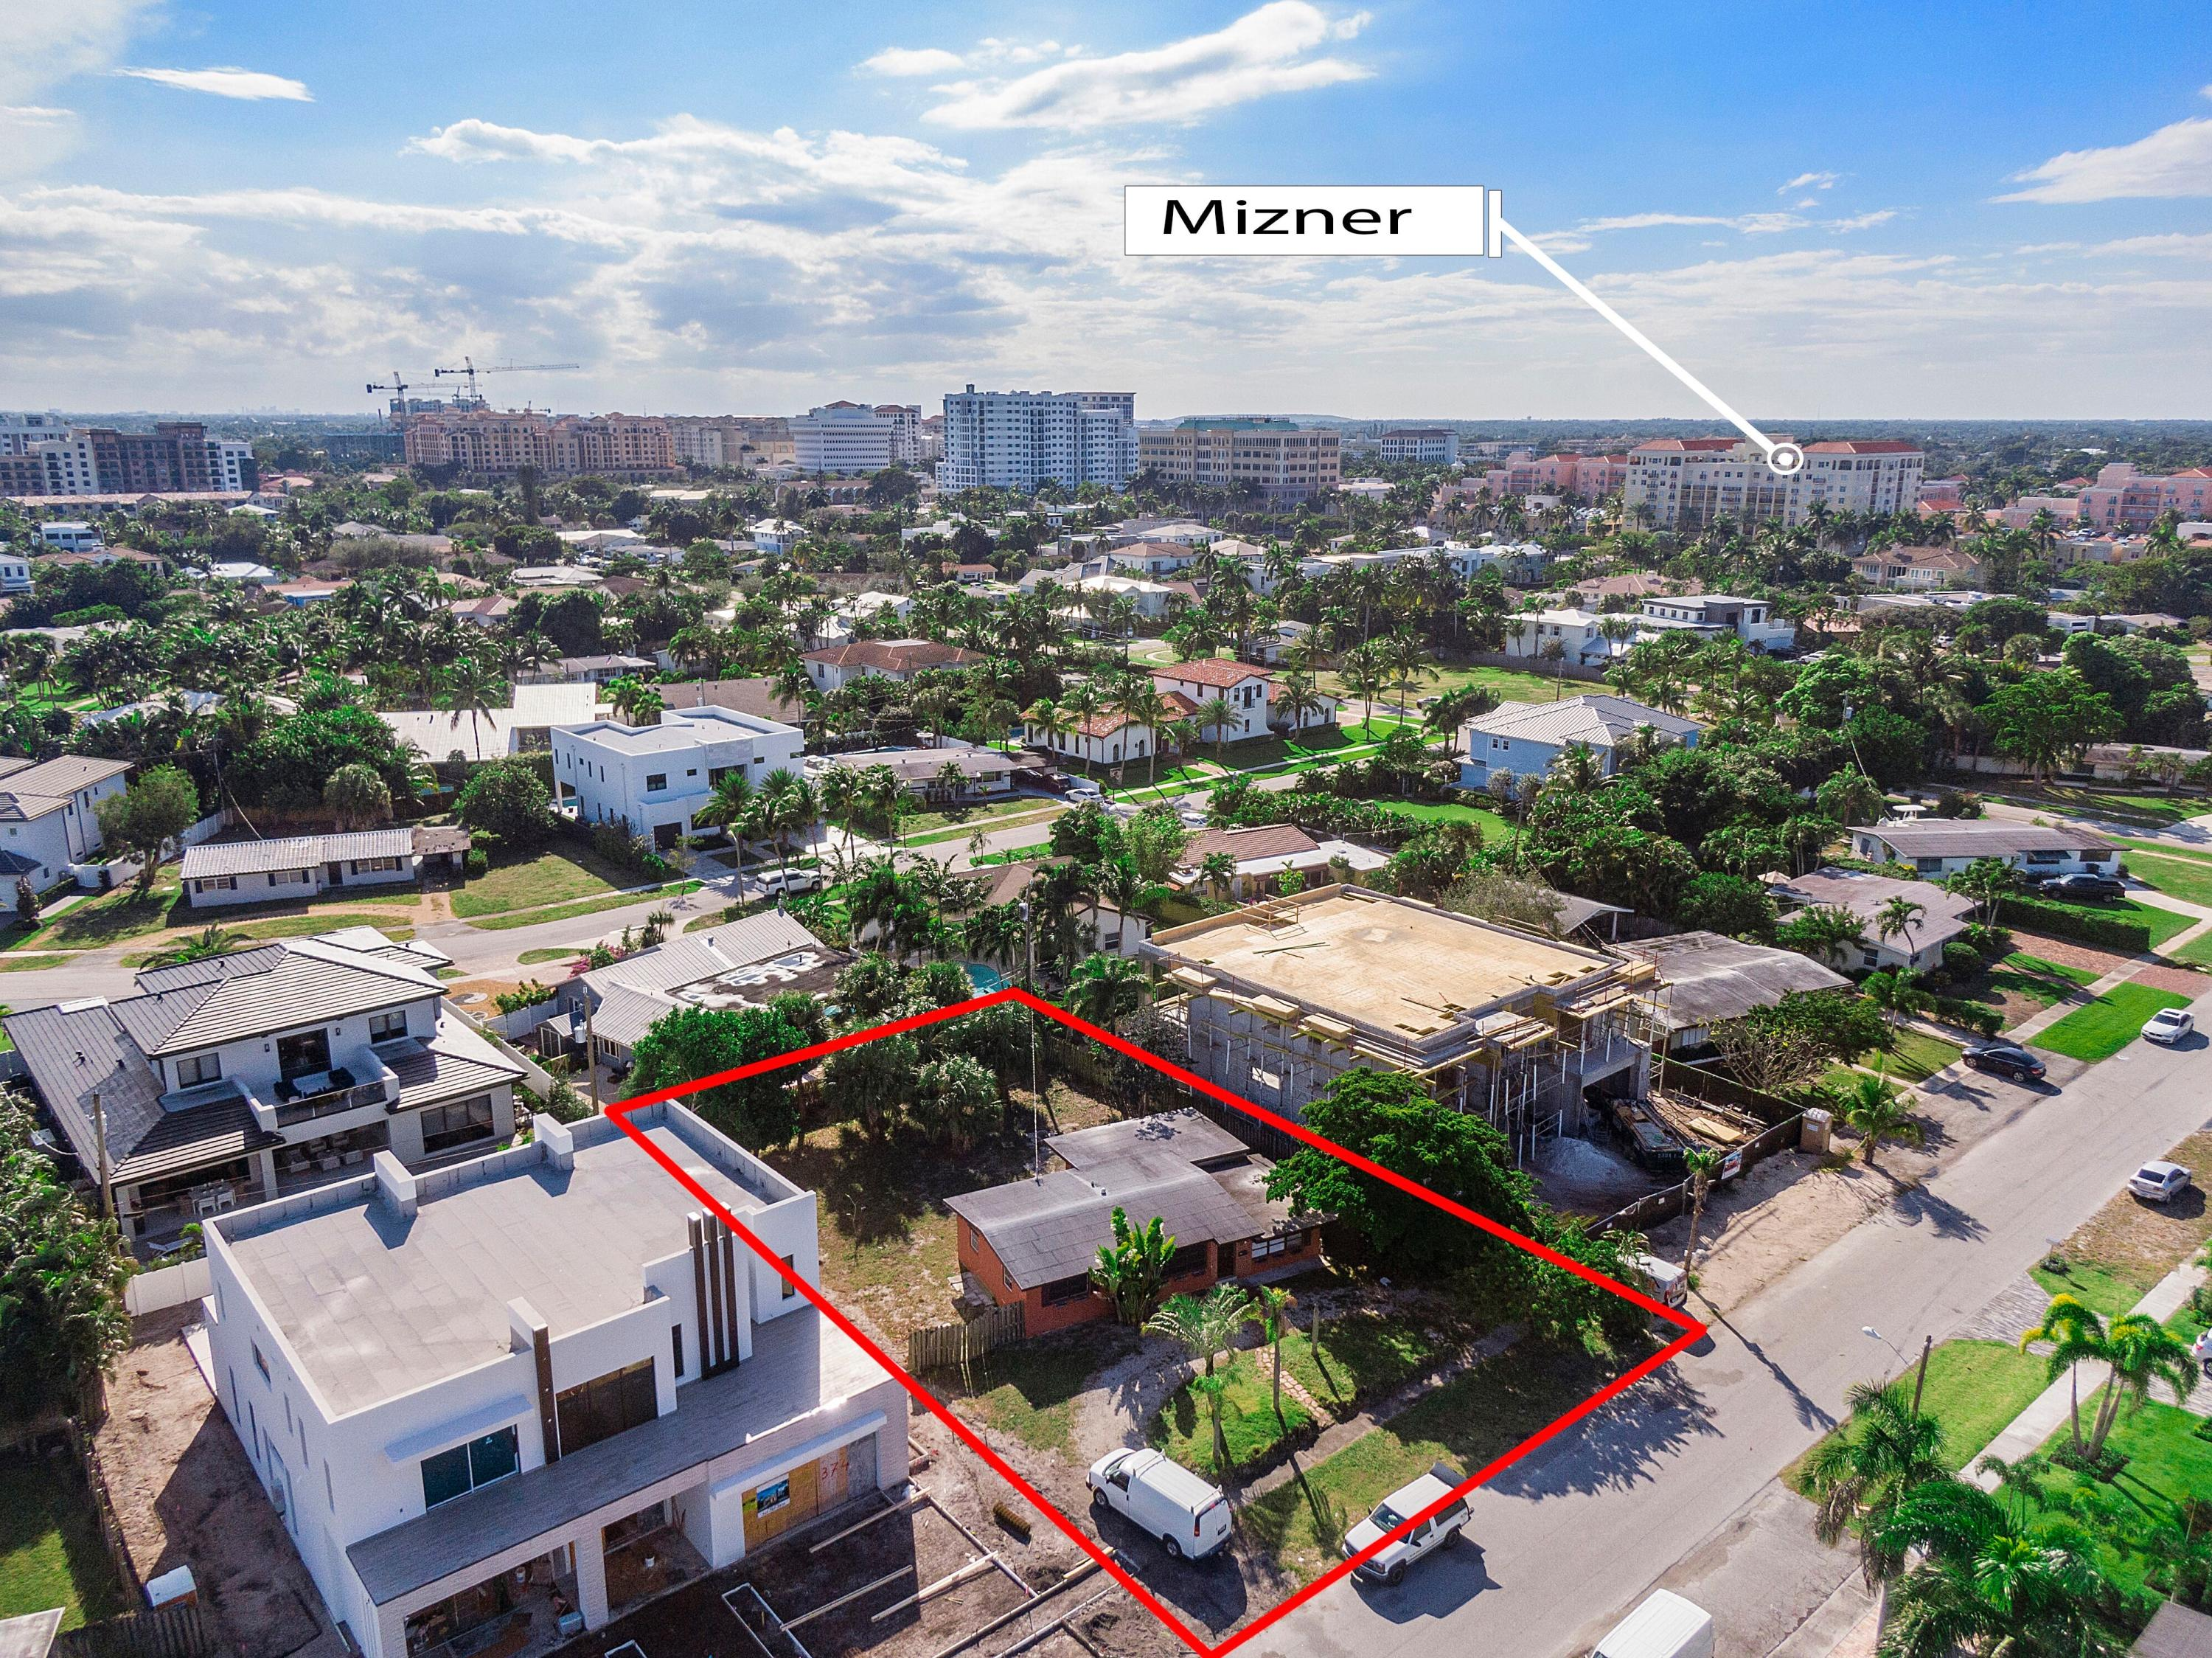 Prime opportunity to build your dream home in one of Boca Raton's most desirable neighborhoods.  Walking distance to Mizner Park and only minutes to the beach.